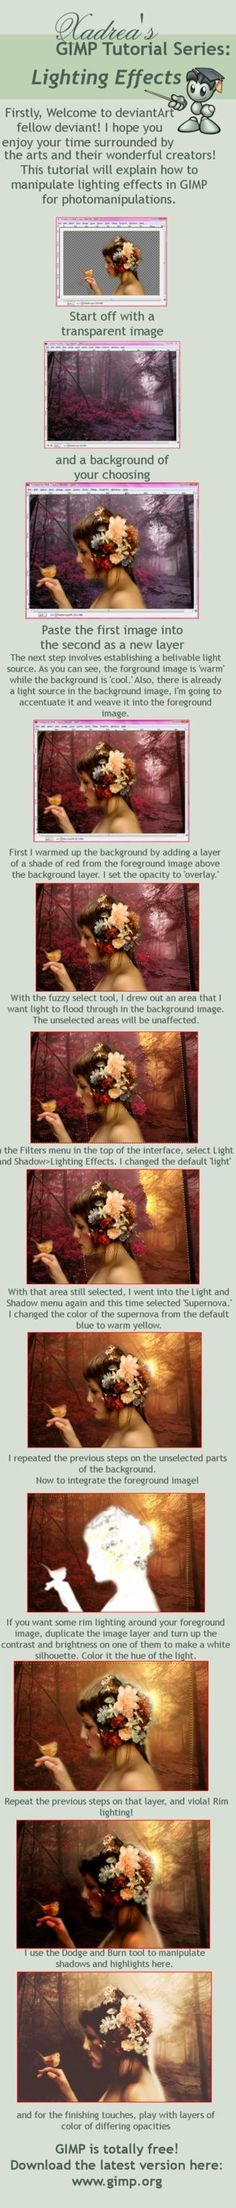 Gimp Tutorial: Lighting Effects by Xadrea on DeviantArt                                                                                                                                                                                 More